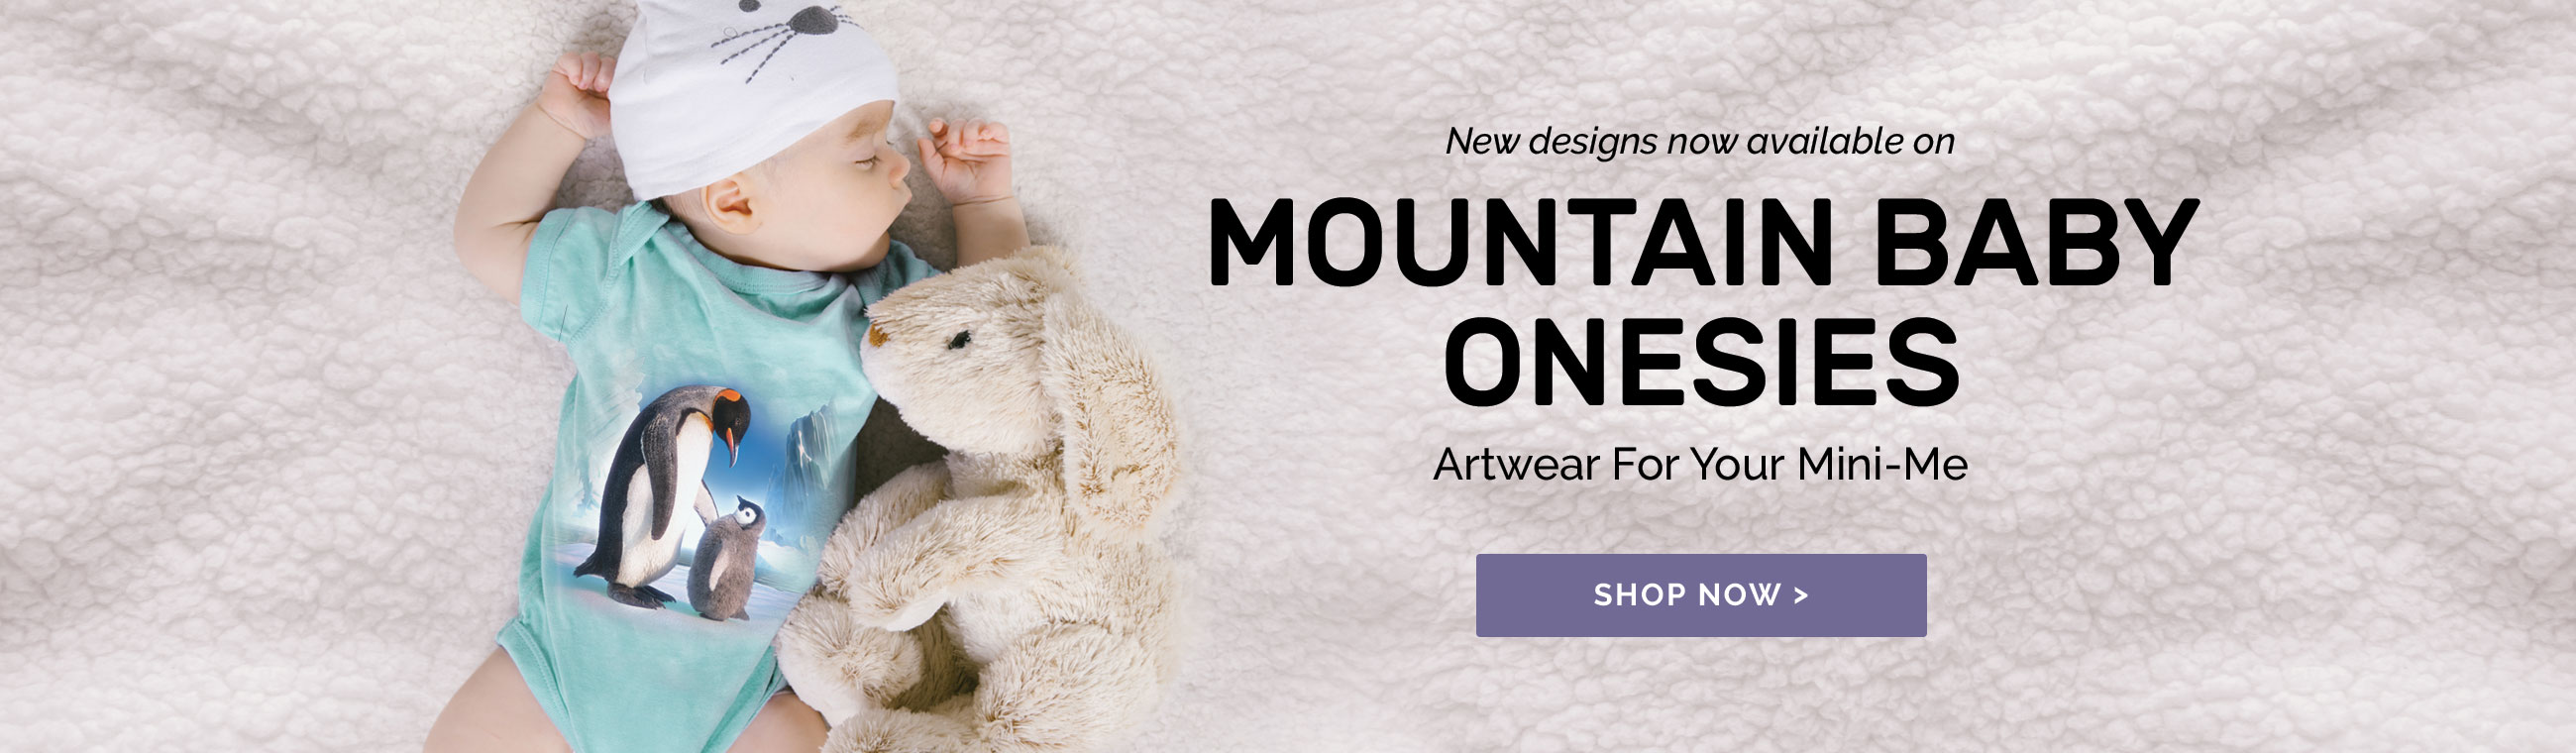 Shop New Onesies